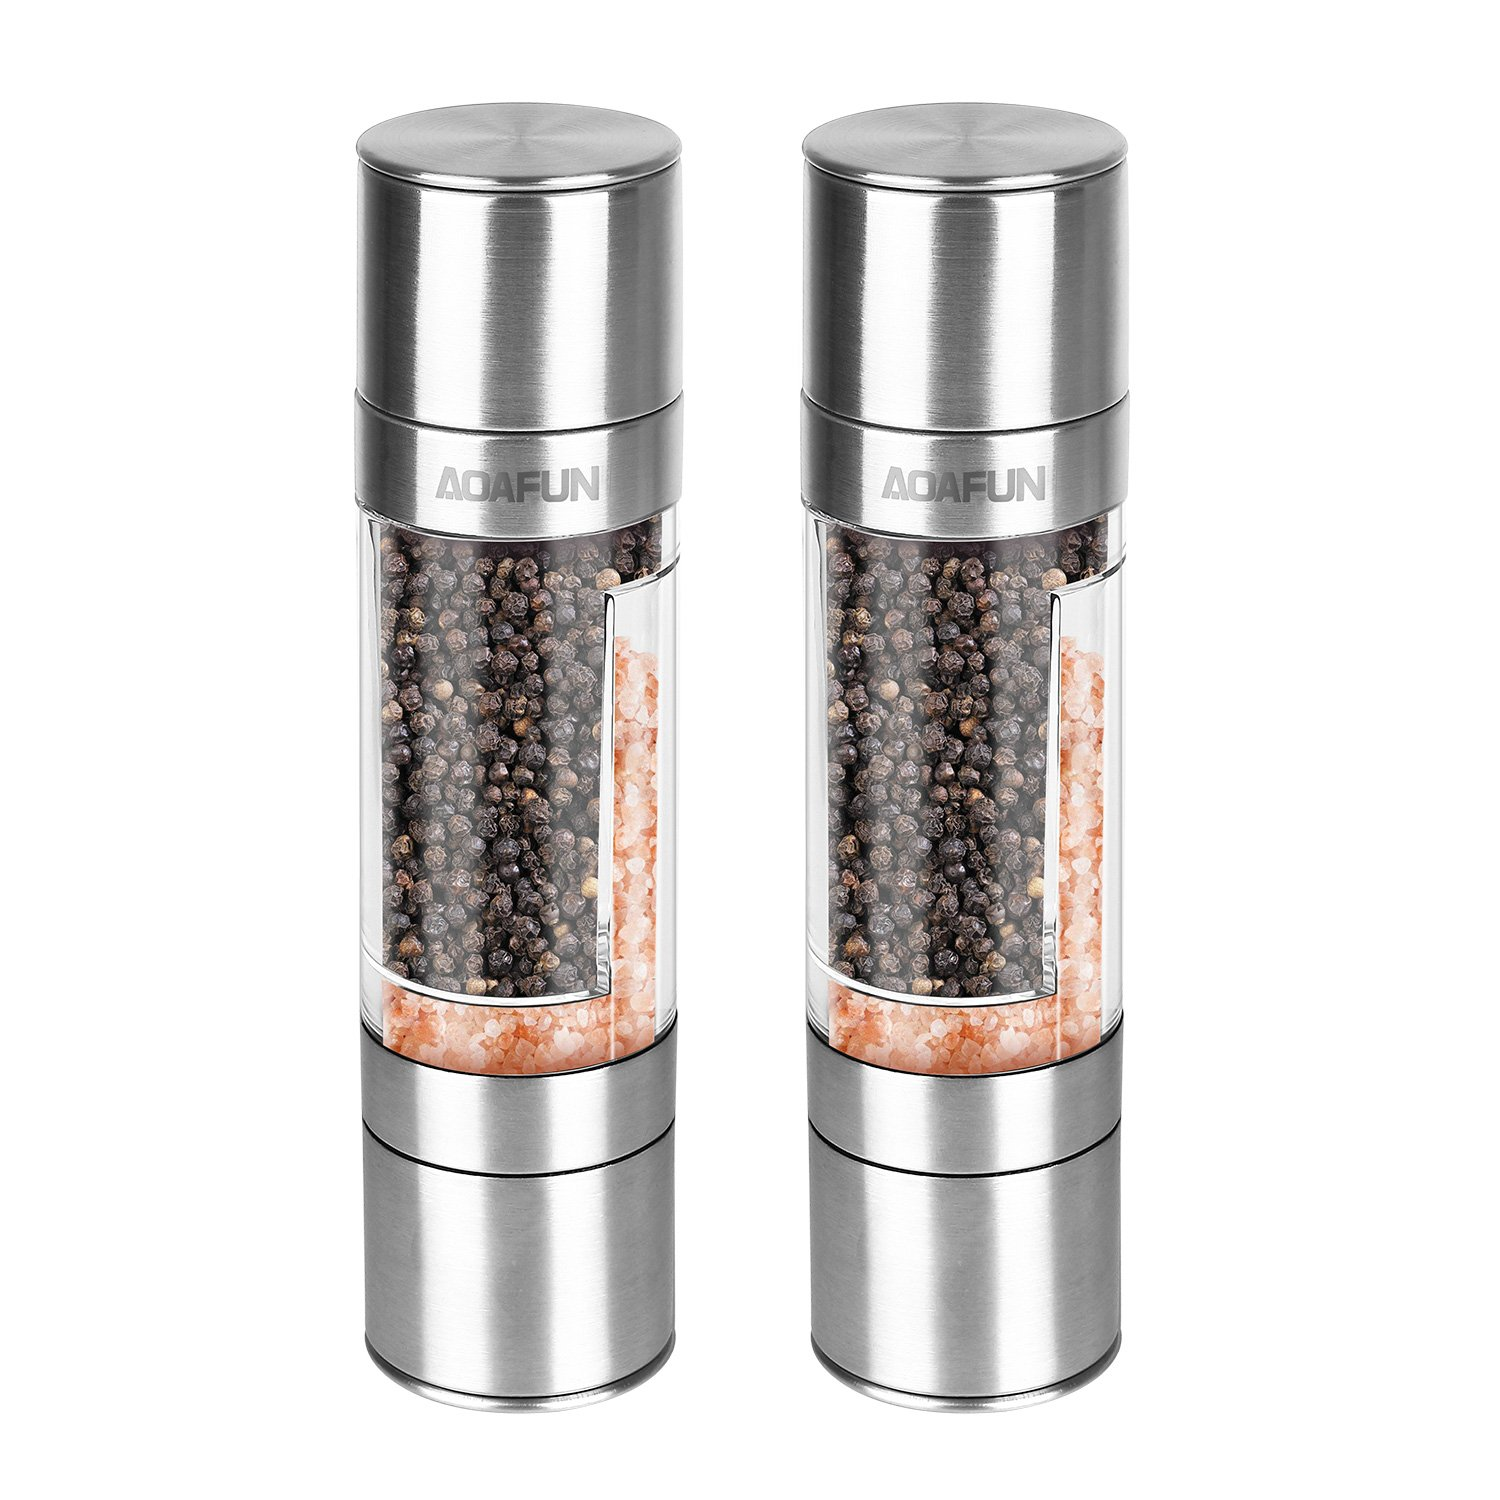 AOAFUN Premium Stainless Steel Salt and Pepper Grinder Set of 2 - Spice Grinder with Adjustable Coarseness, Ceramic Rotor, Tall Salt and Pepper Shaker, Brushed Stainless.